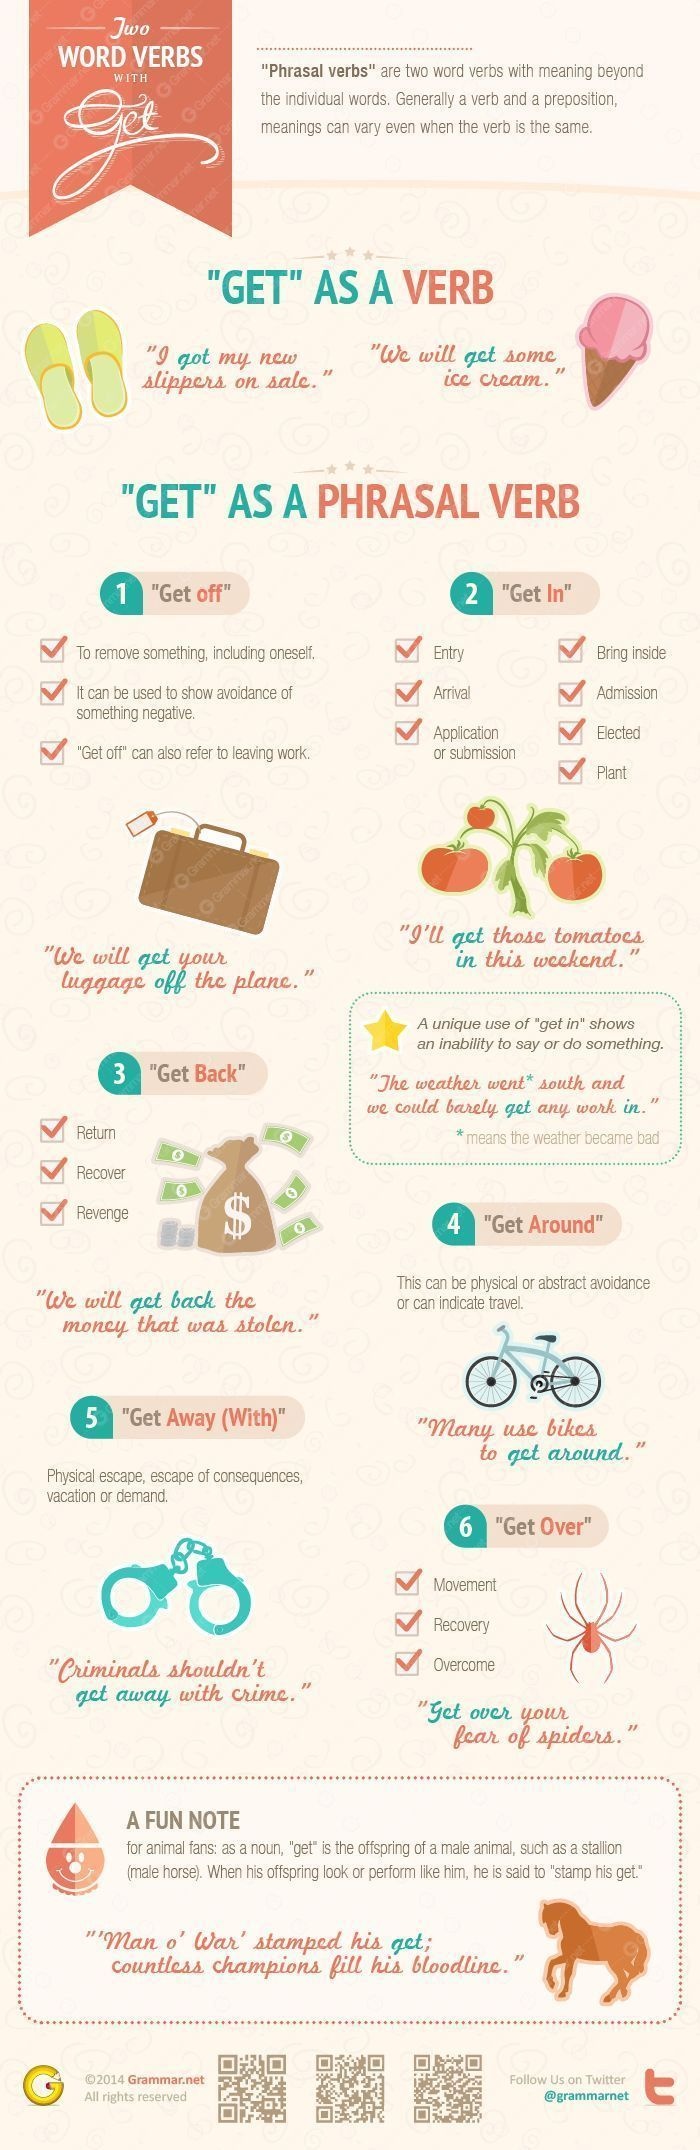 6 Tips to Learn Phrasal Verbs in English - Fluent in 3 ...